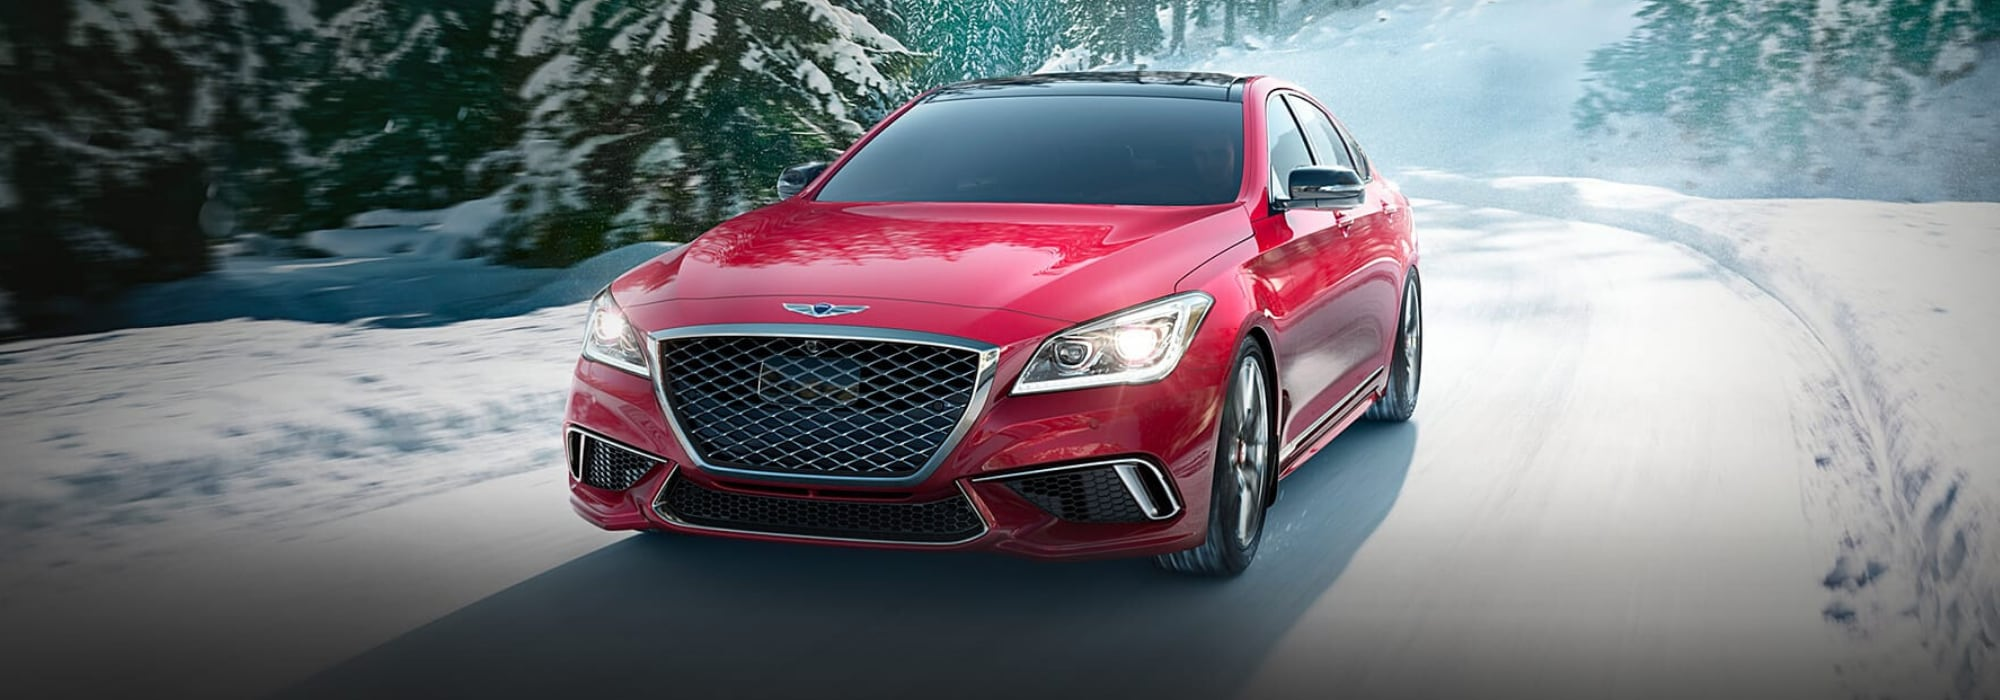 New 2020 Genesis G80 Luxury Sedan hero image